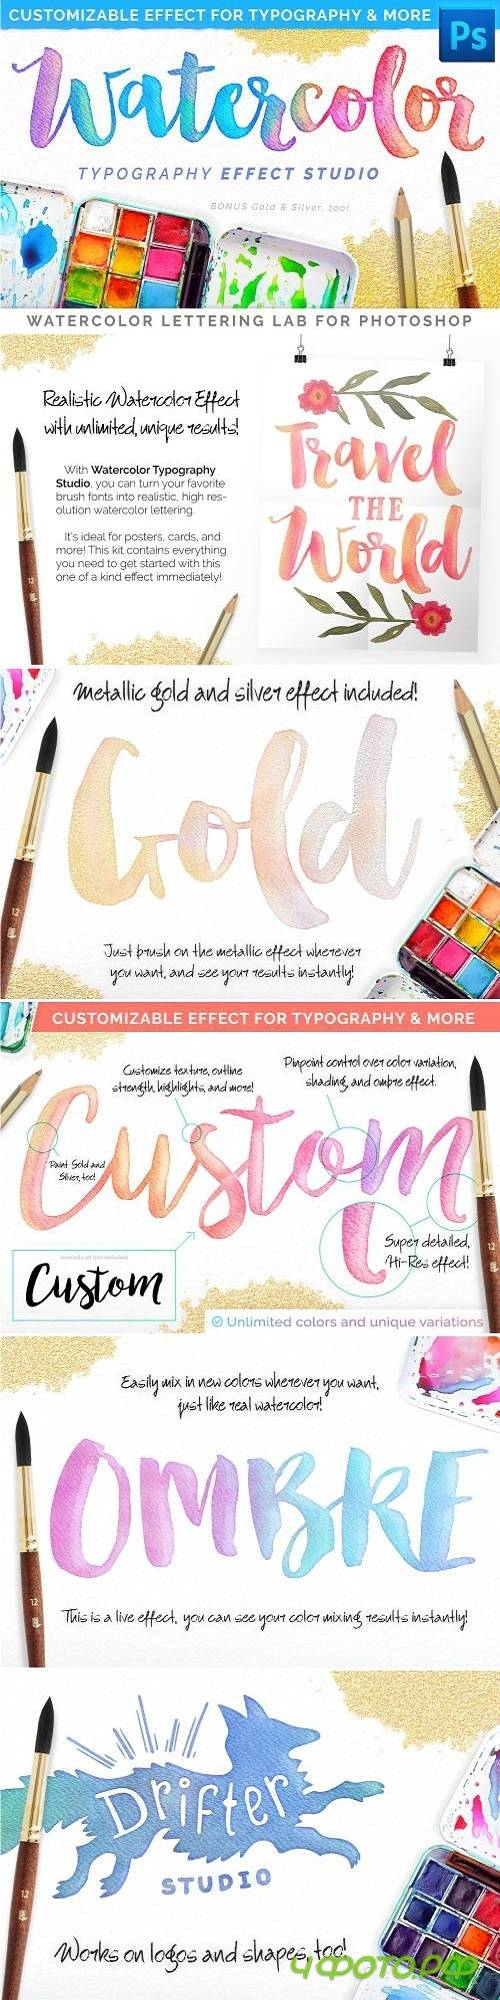 Watercolor Lettering Studio Pro 2739196